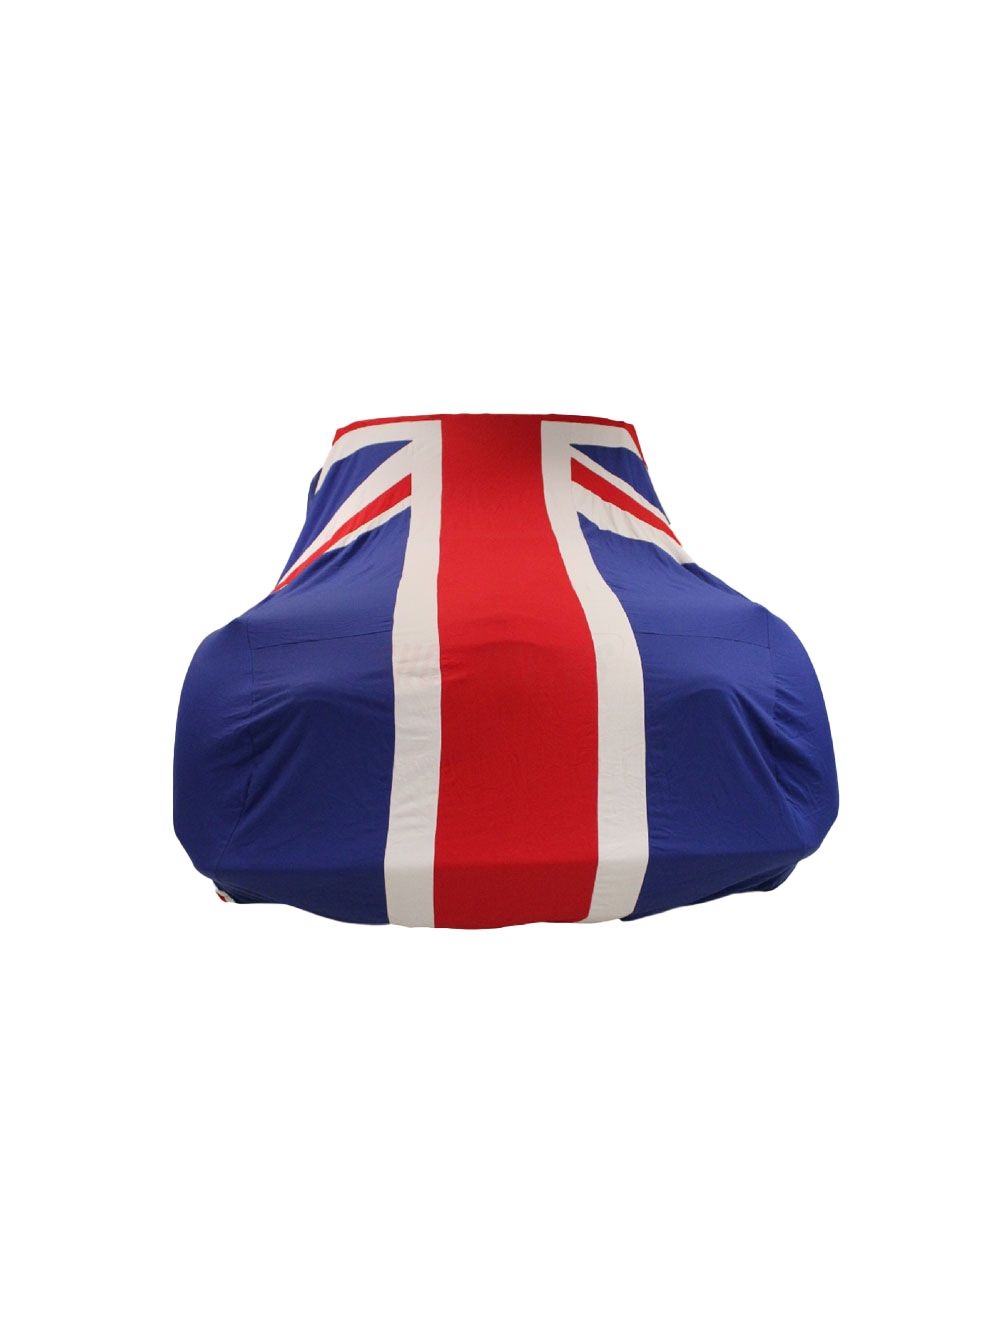 Richbrook Tailored Indoor//Outdoor Car Cover For Morgan Plus 8 /'68-/'04